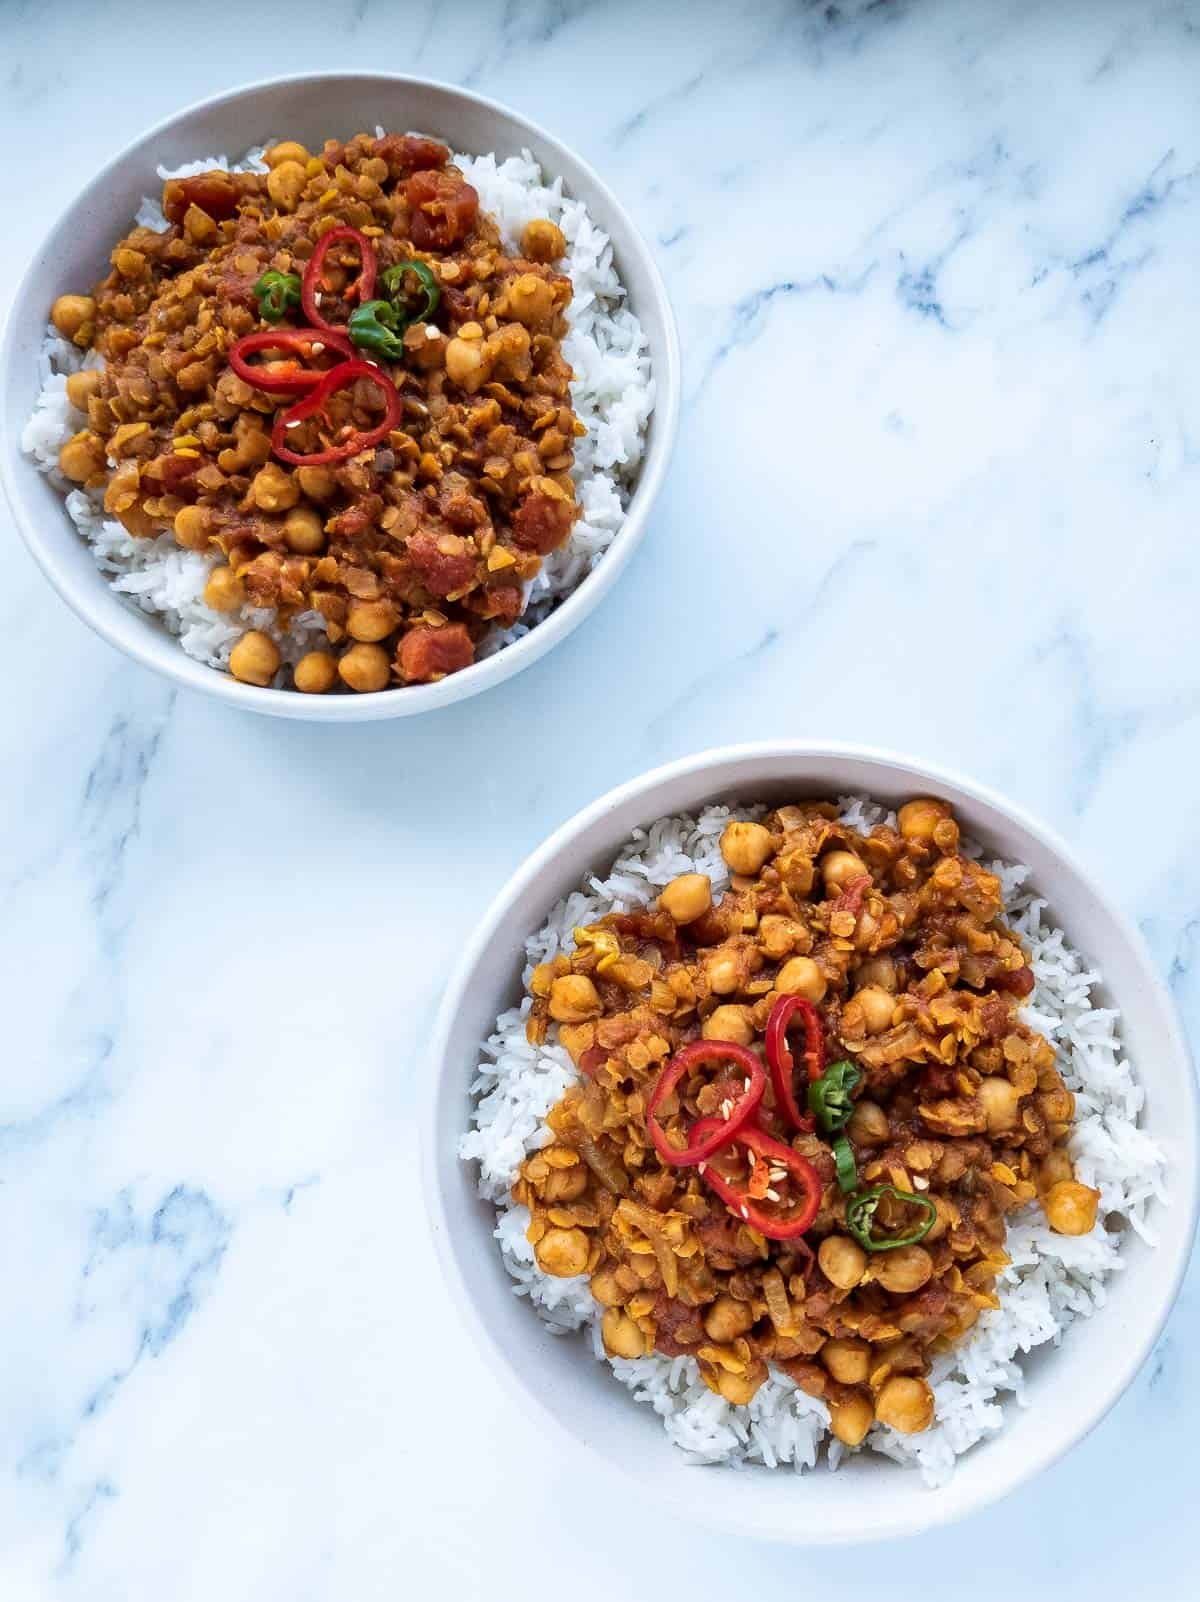 Two bowls of lentil and chickpea curry.